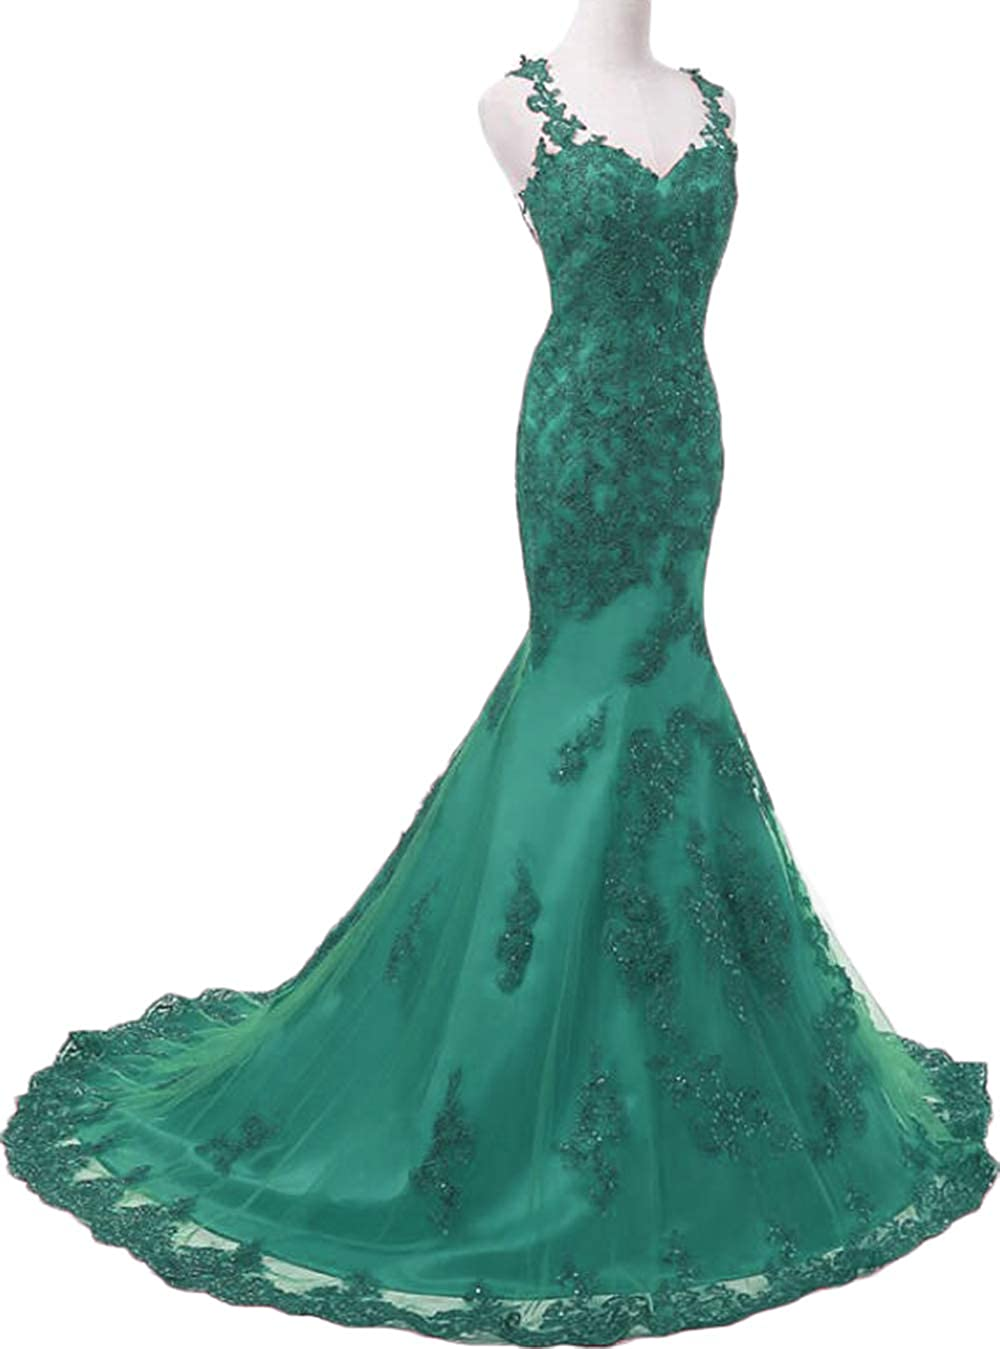 Turquoise Womens Illusions Lace Mermaid Prom Dresses Long 2019 Beaded Tulle Wedding Party Dresses Formal Evening Gowns